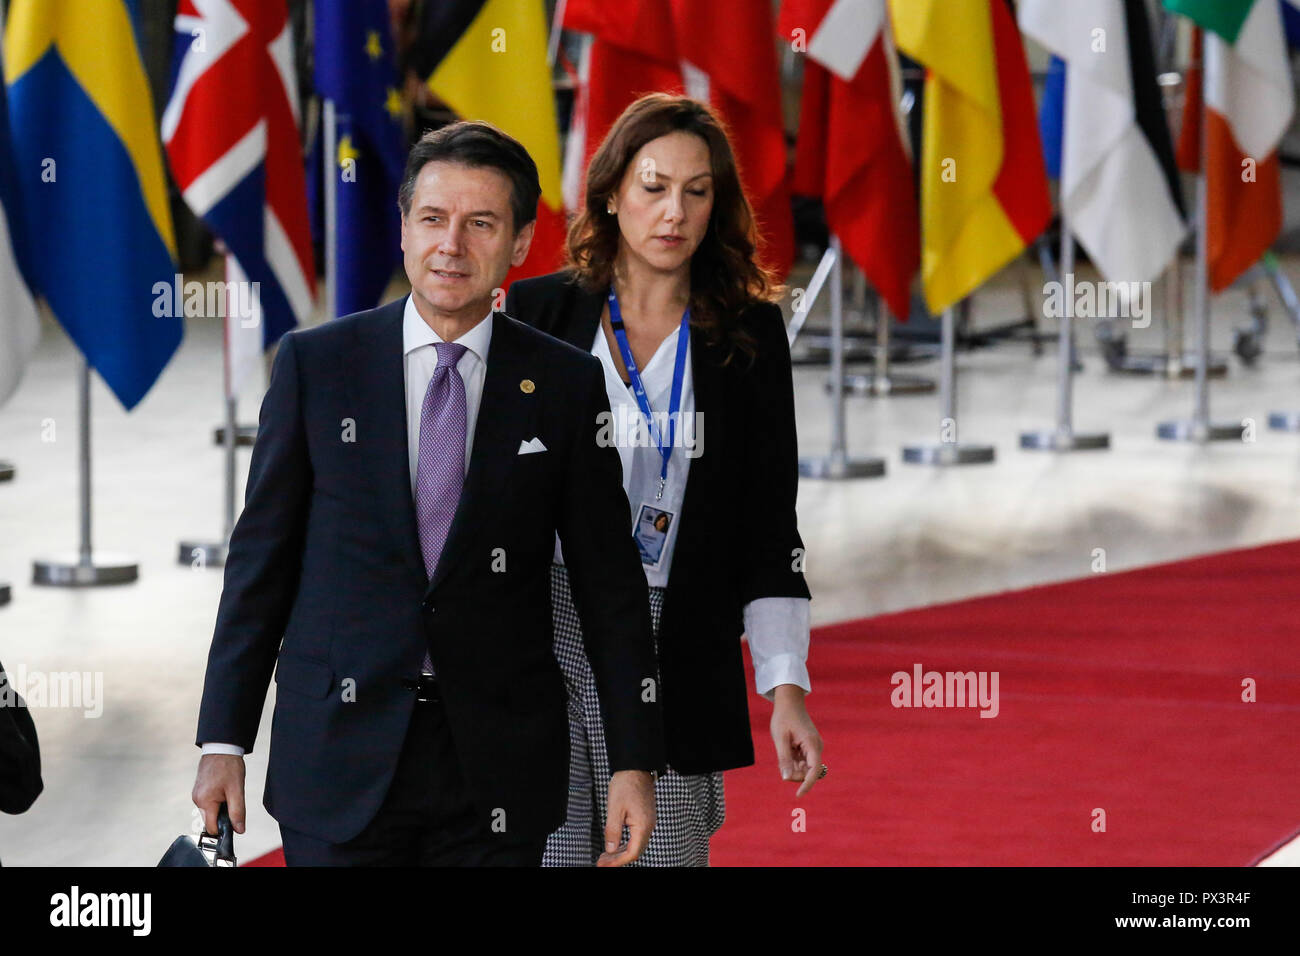 Brussels, Belgium. 18th Oct 2018. Giuseppe Conte, Prime Minister of Italy arrives for European Council meeting in Brussels, Belgium on October 18, 2018. The summit concentrates on migration and security policies. Credit: Michal Busko/Alamy Live News - Stock Image